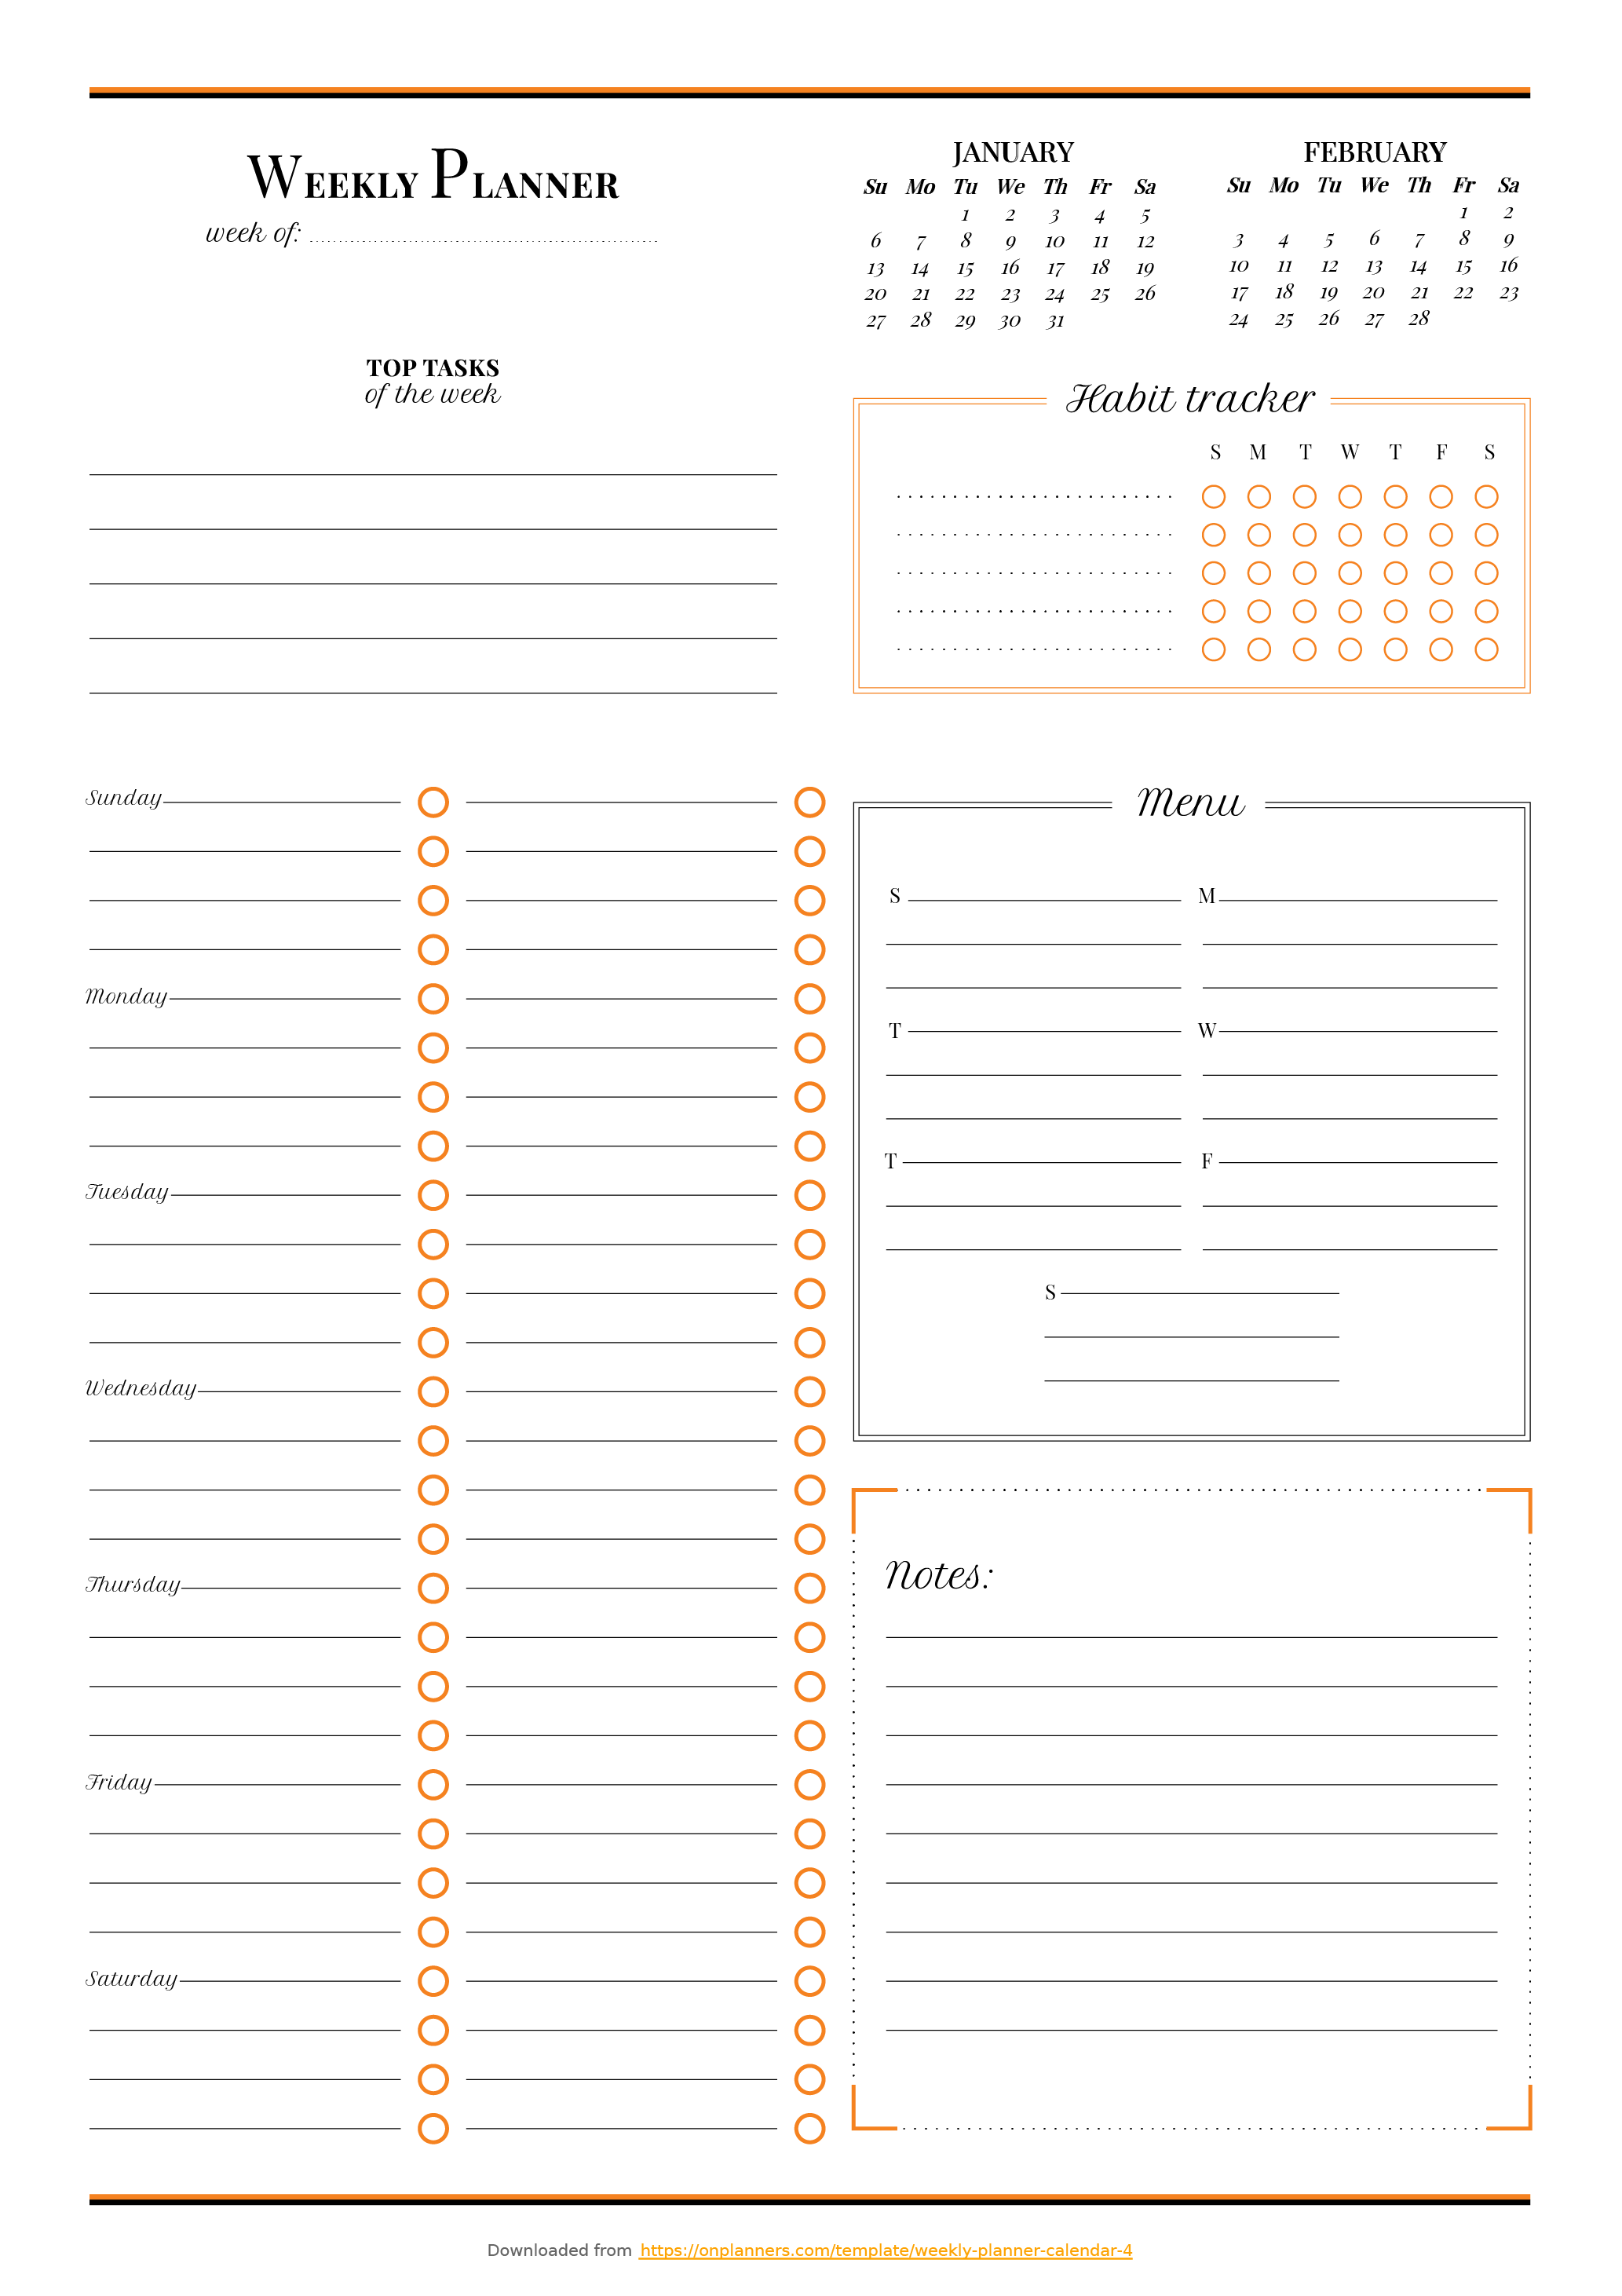 Weekly Planner With Habit Tracker With Images